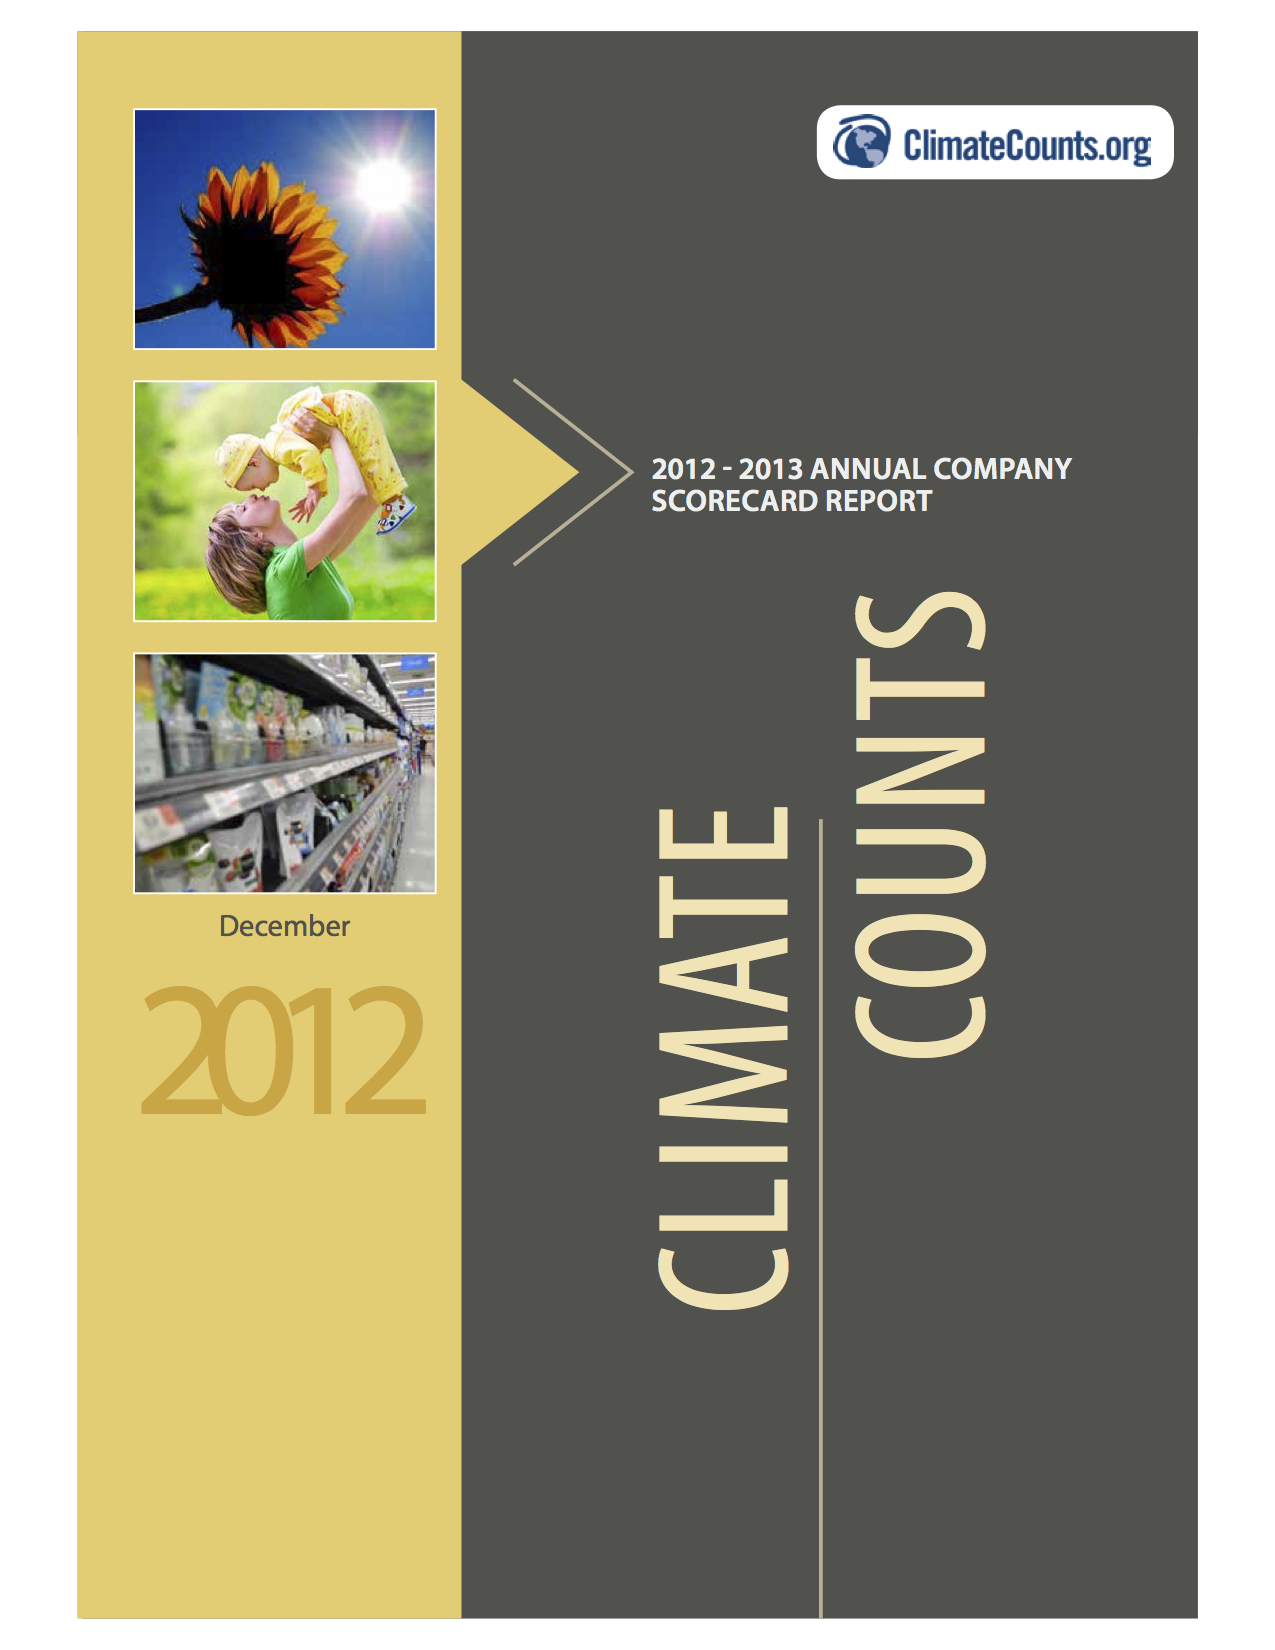 Climate Counts 2012 Annual Company Scorecard Report